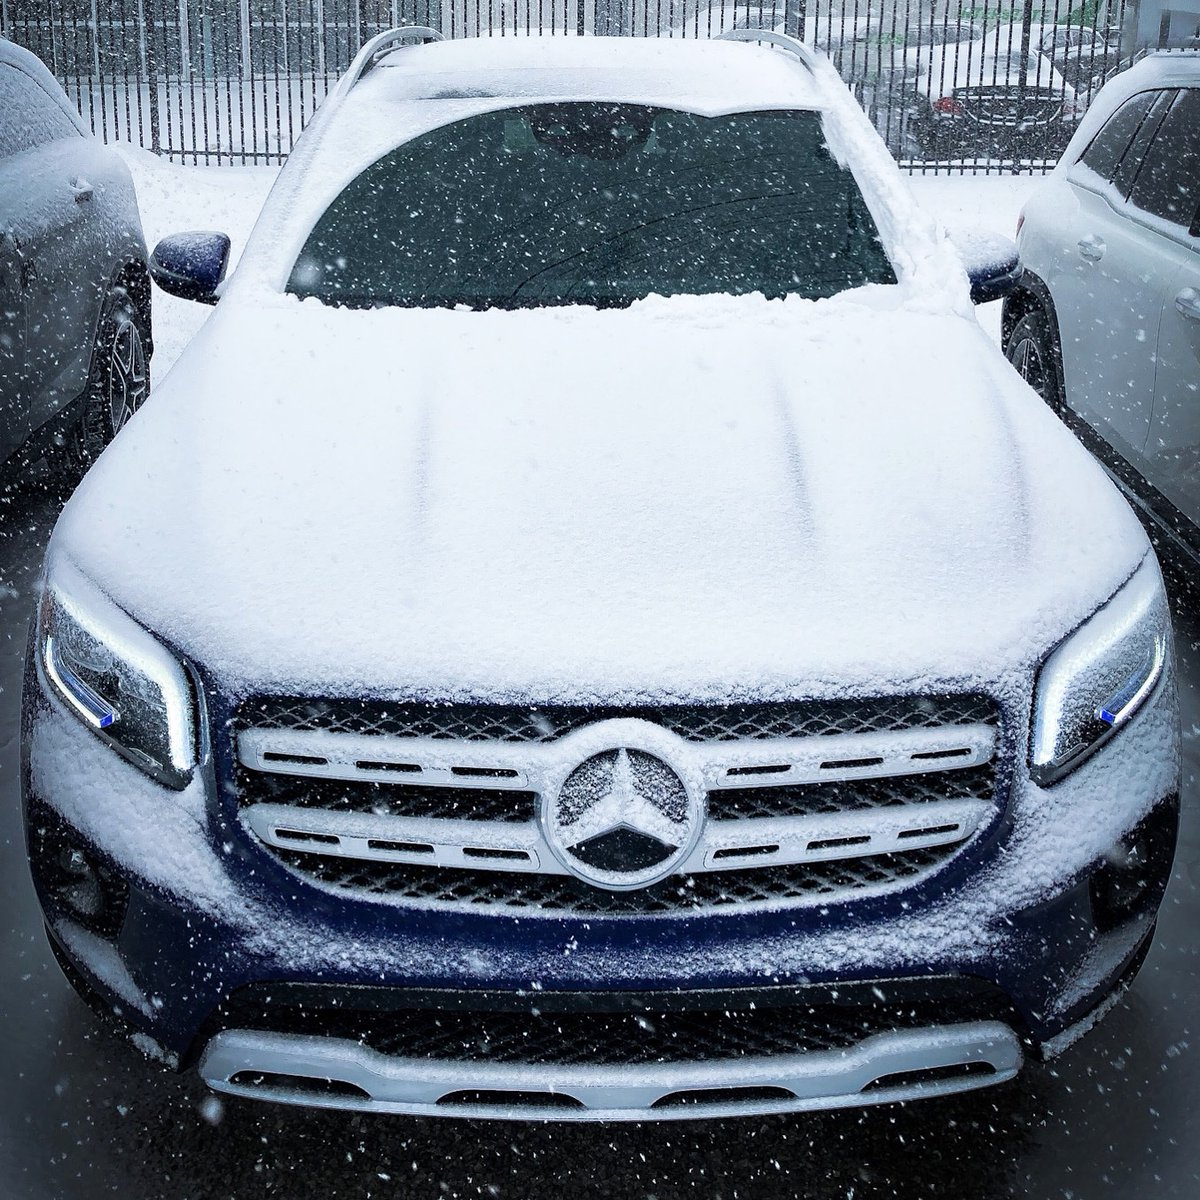 A snow angel meant for all terrain   2021 GLB250 4MATIC SUV   . . #mbptbo #shemercedes #SUV #blue #snow #angel #mercedesbenzcanada https://t.co/JFx2thFPSe